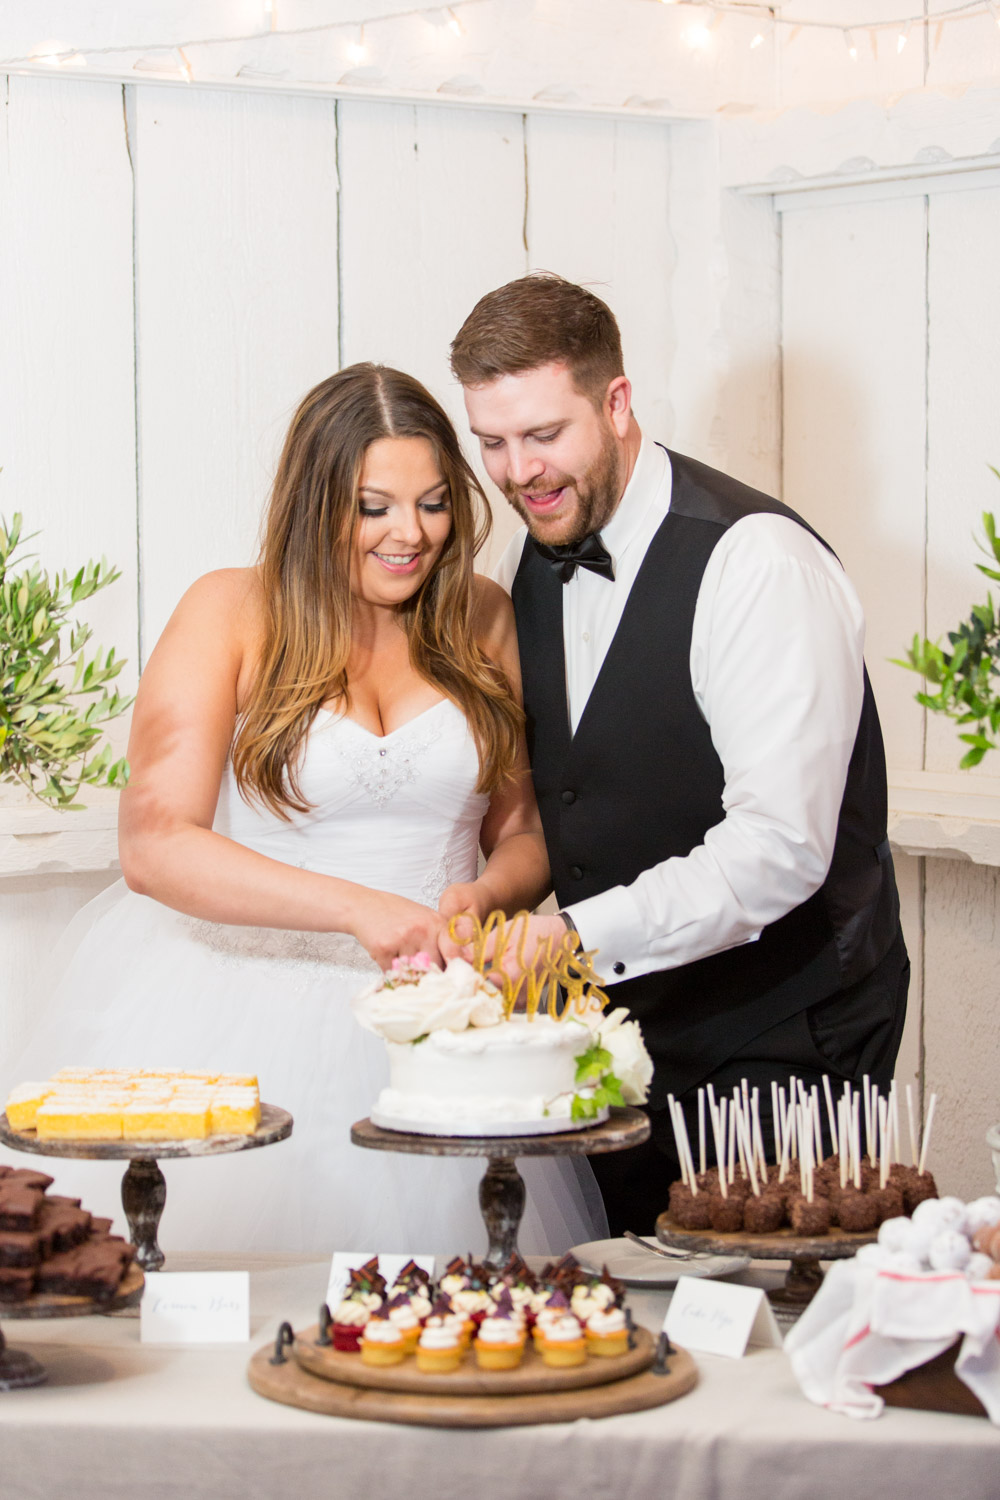 Cake cutting at Leo Carrillo Ranch, bride and groom cutting into a one tier white cake